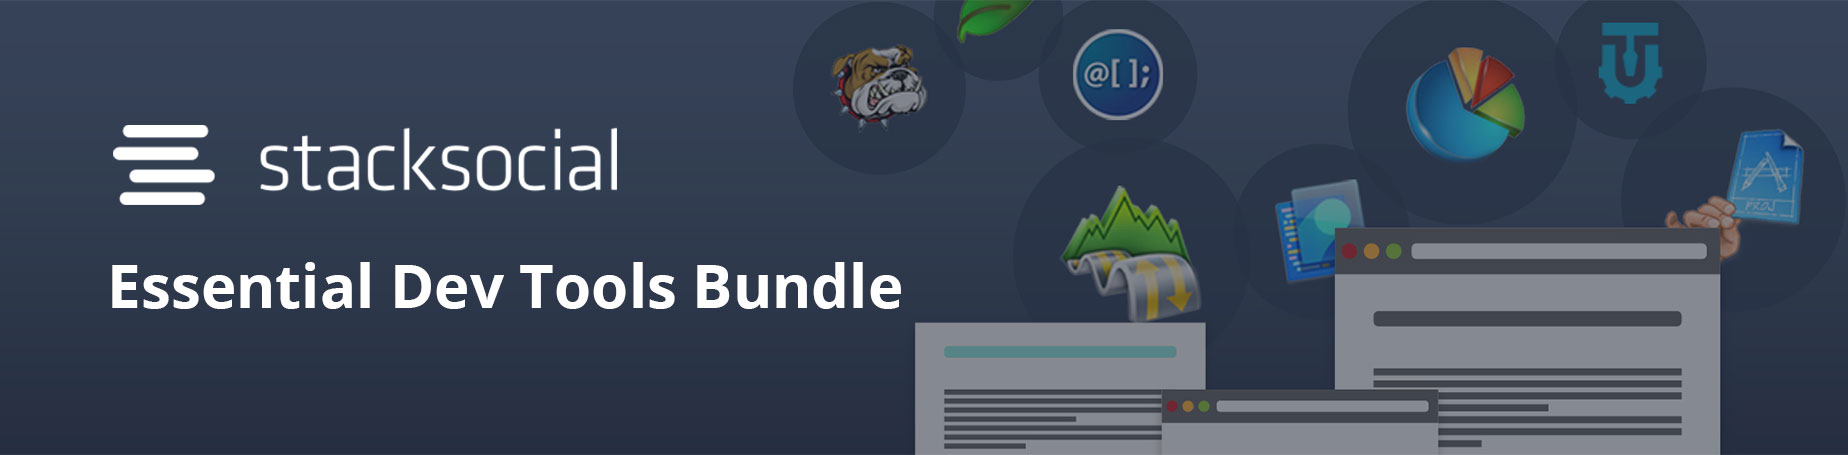 StackSocial Essential Dev Tools Bundle